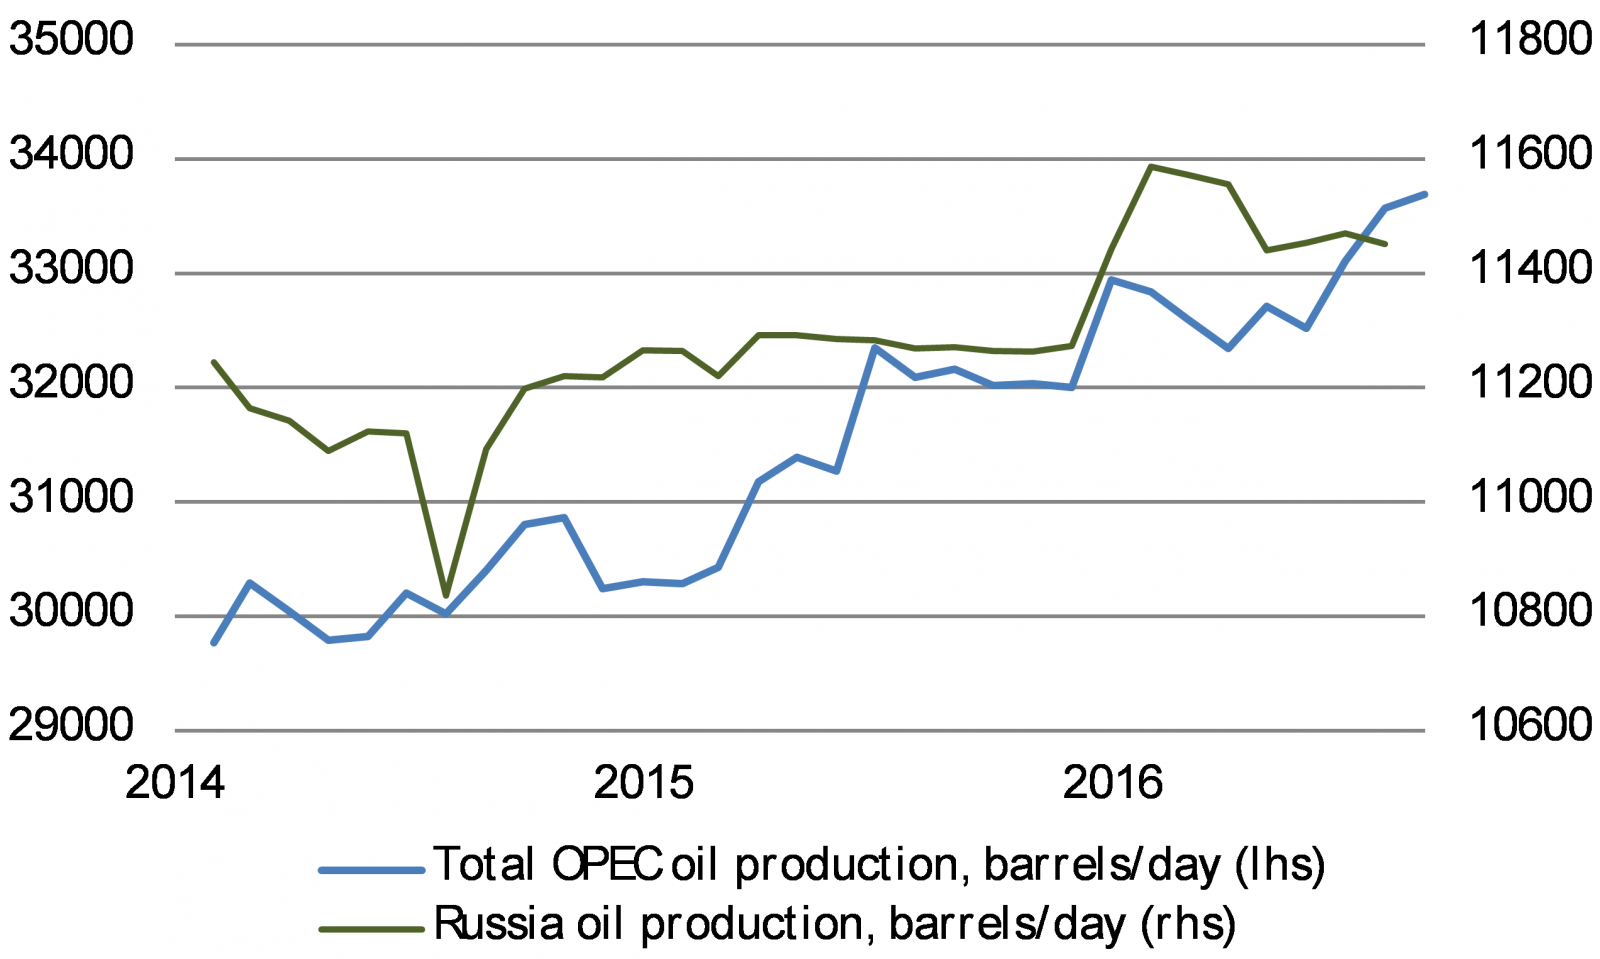 OPEC and Russian oil production has grown steadily